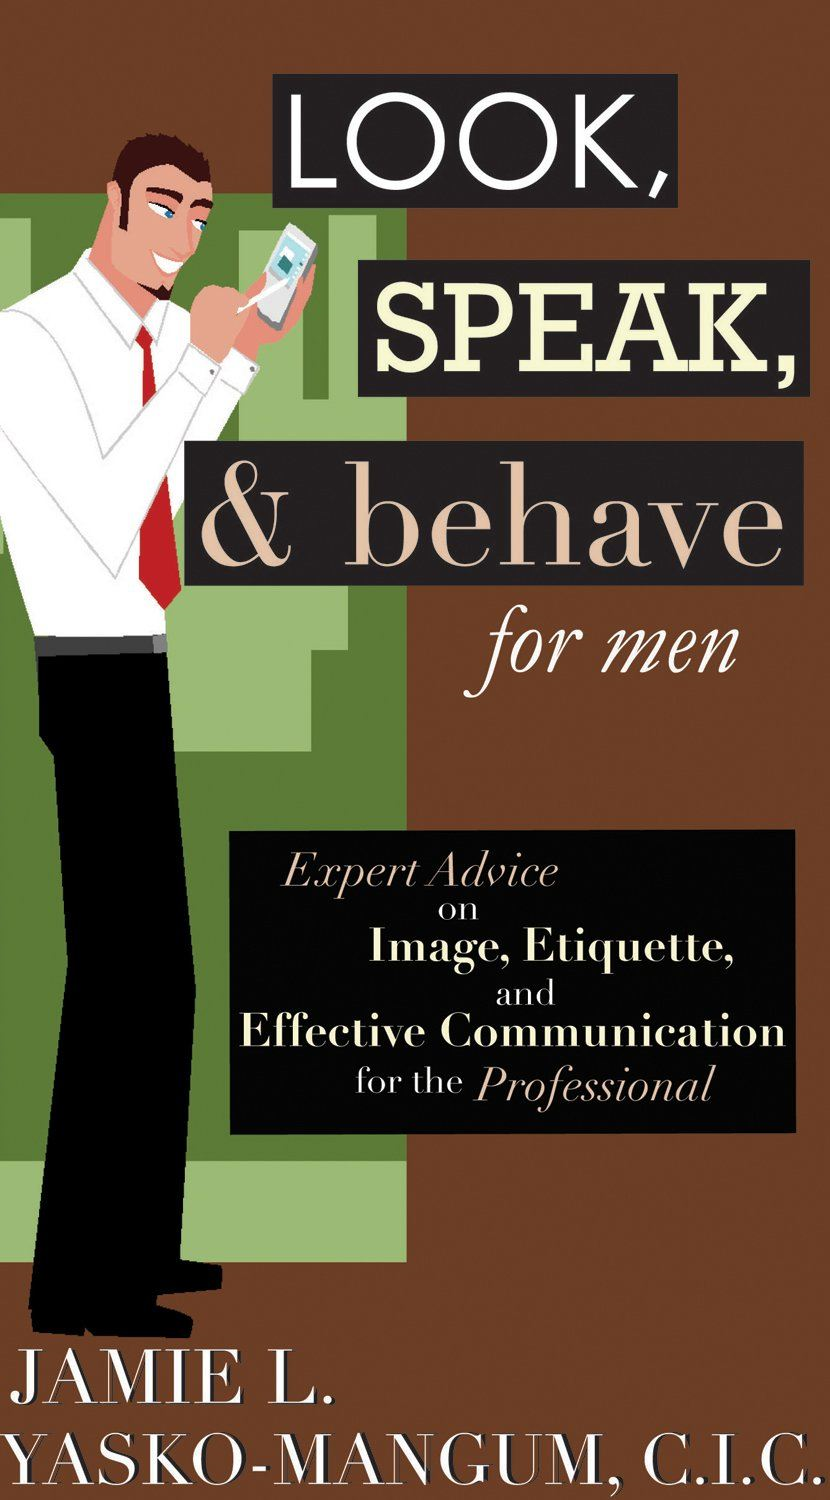 Look, Speak, & Behave For Men: Expert Advice on Image, Etiquette, and Effective Communication for the Professional